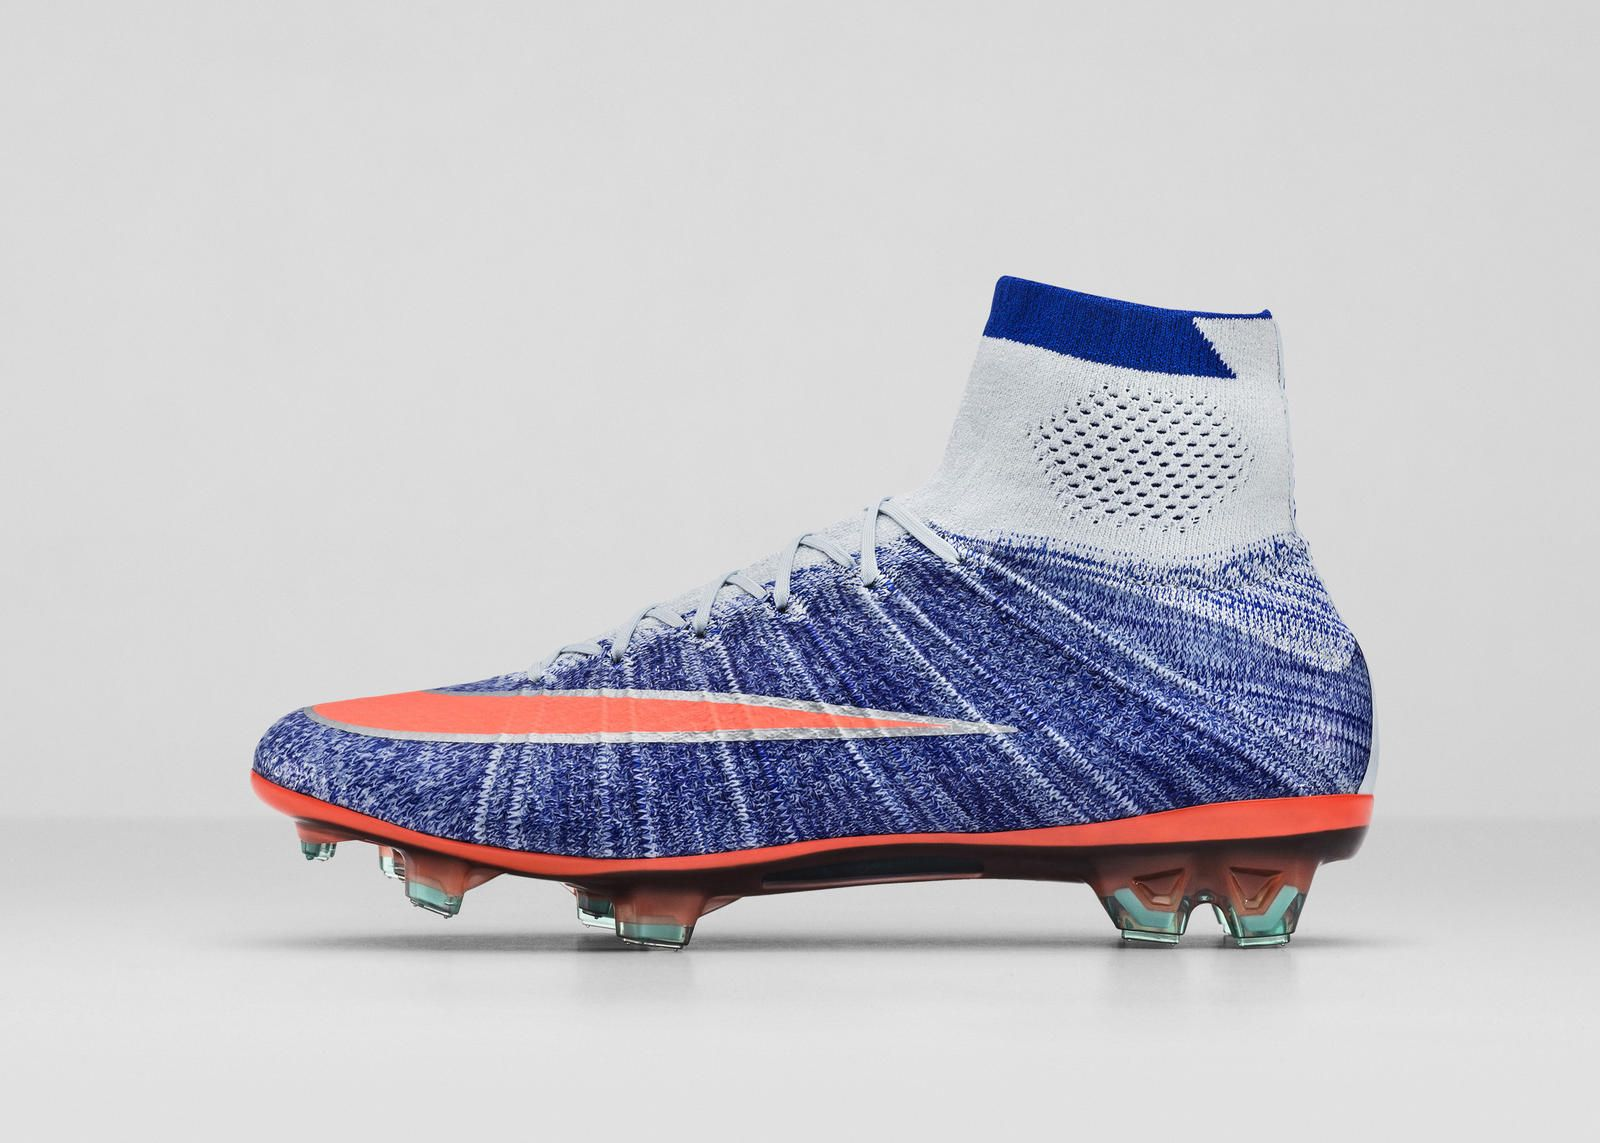 Nike News - NIKE SOCCER UNVEILS ALL-NEW WOMEN S CLEAT PACK FOR 2016 52abaa6e7563